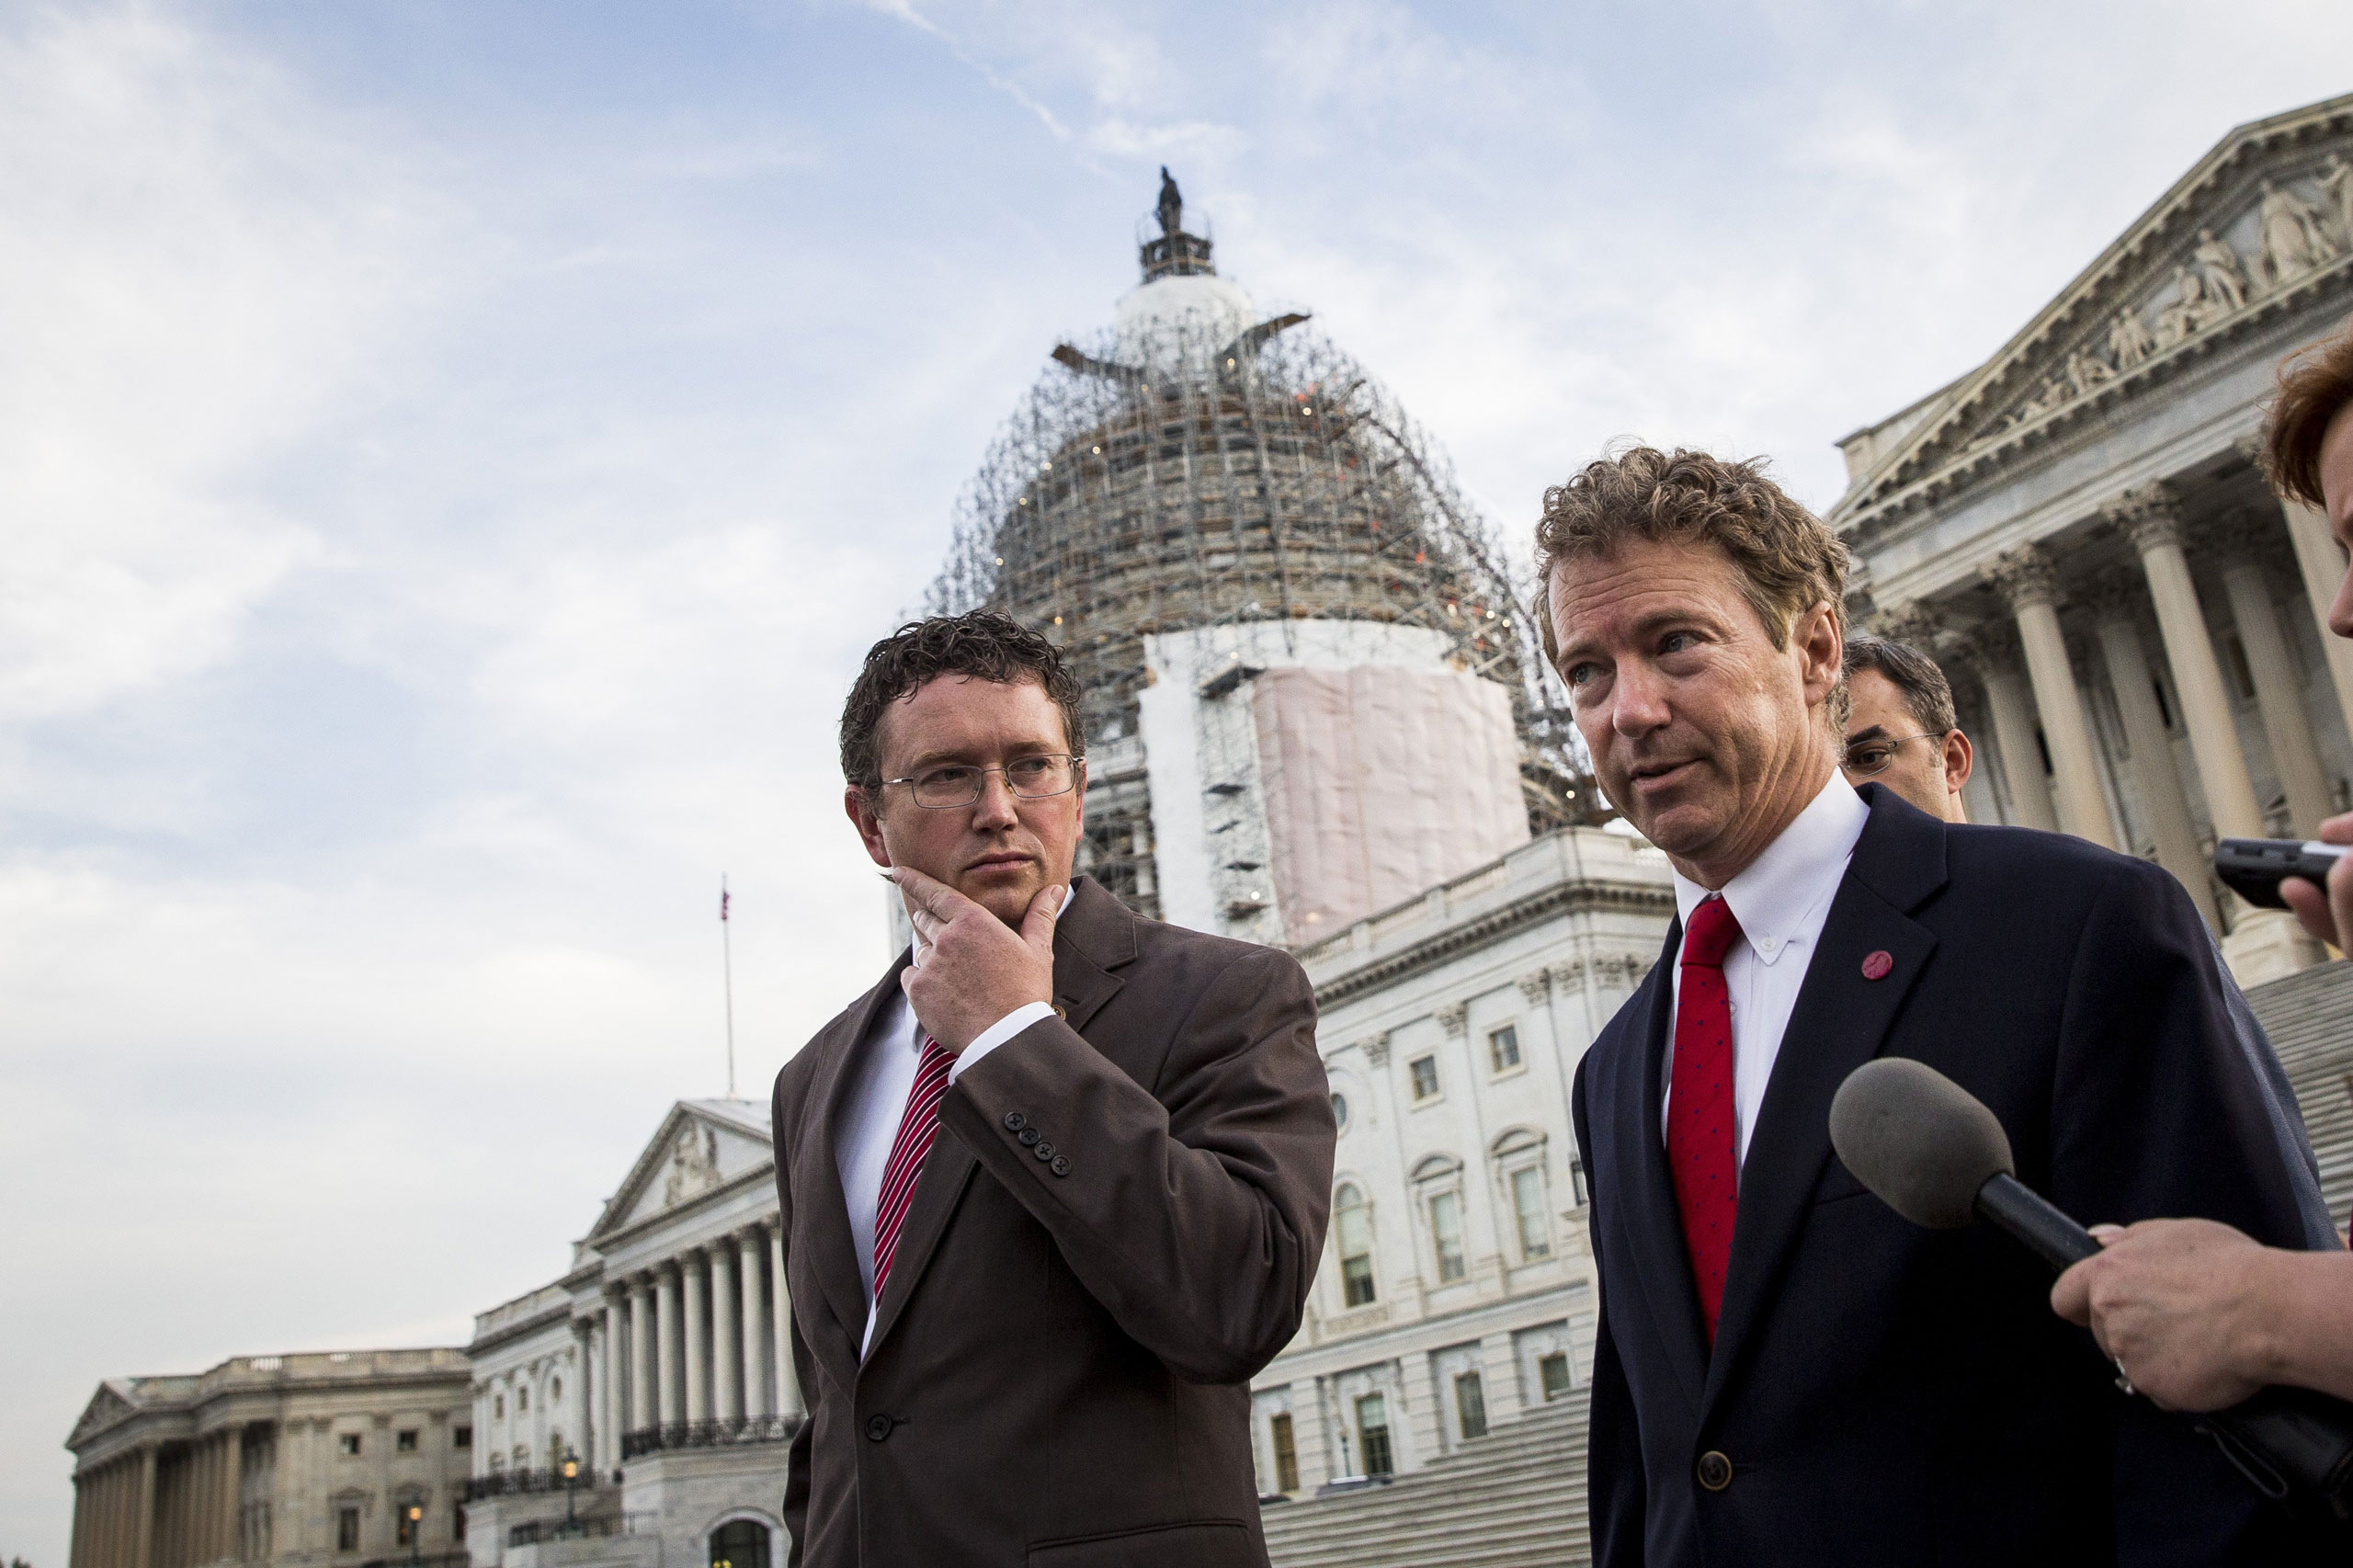 From left: Representative Thomas Massie listens as Senator Rand Paul speaks to reporters after exiting the Senate chamber on Capitol Hill in Washington on May 31, 2015.